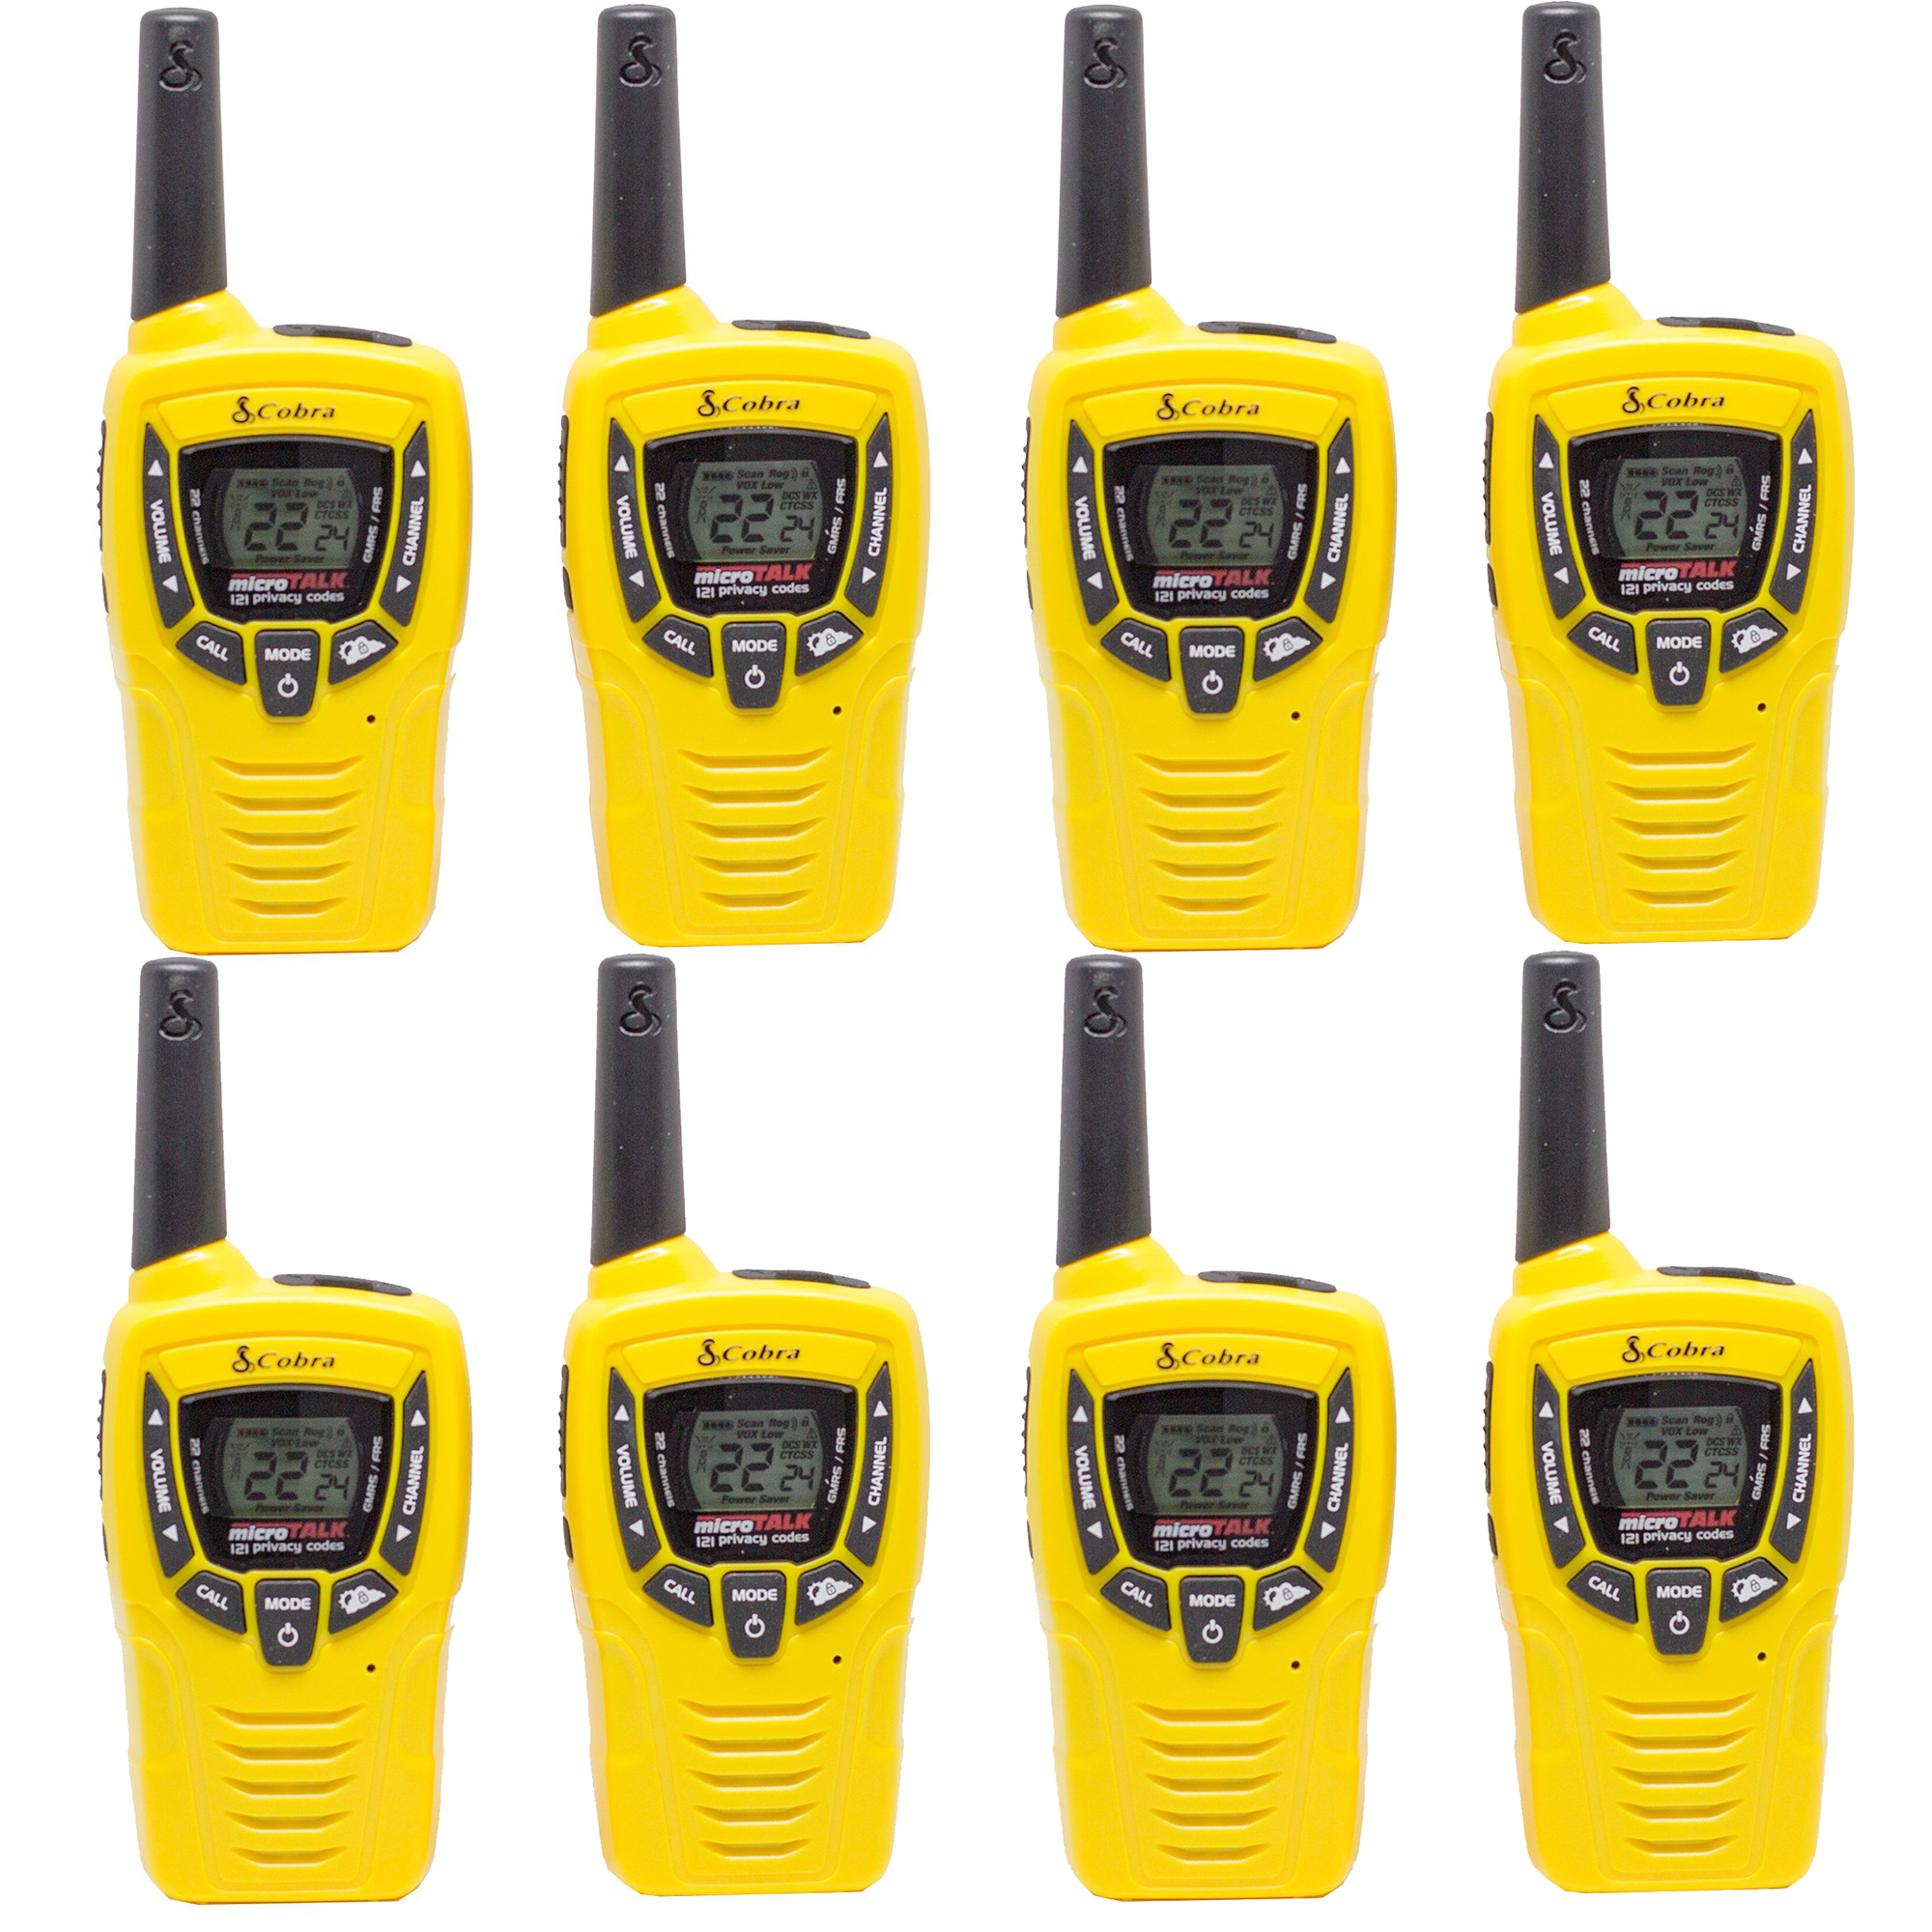 Cobra 23 Mile 22 Channel Walkie Talkie VOX NOAA Receiver Radios CX335 (4 Pairs)